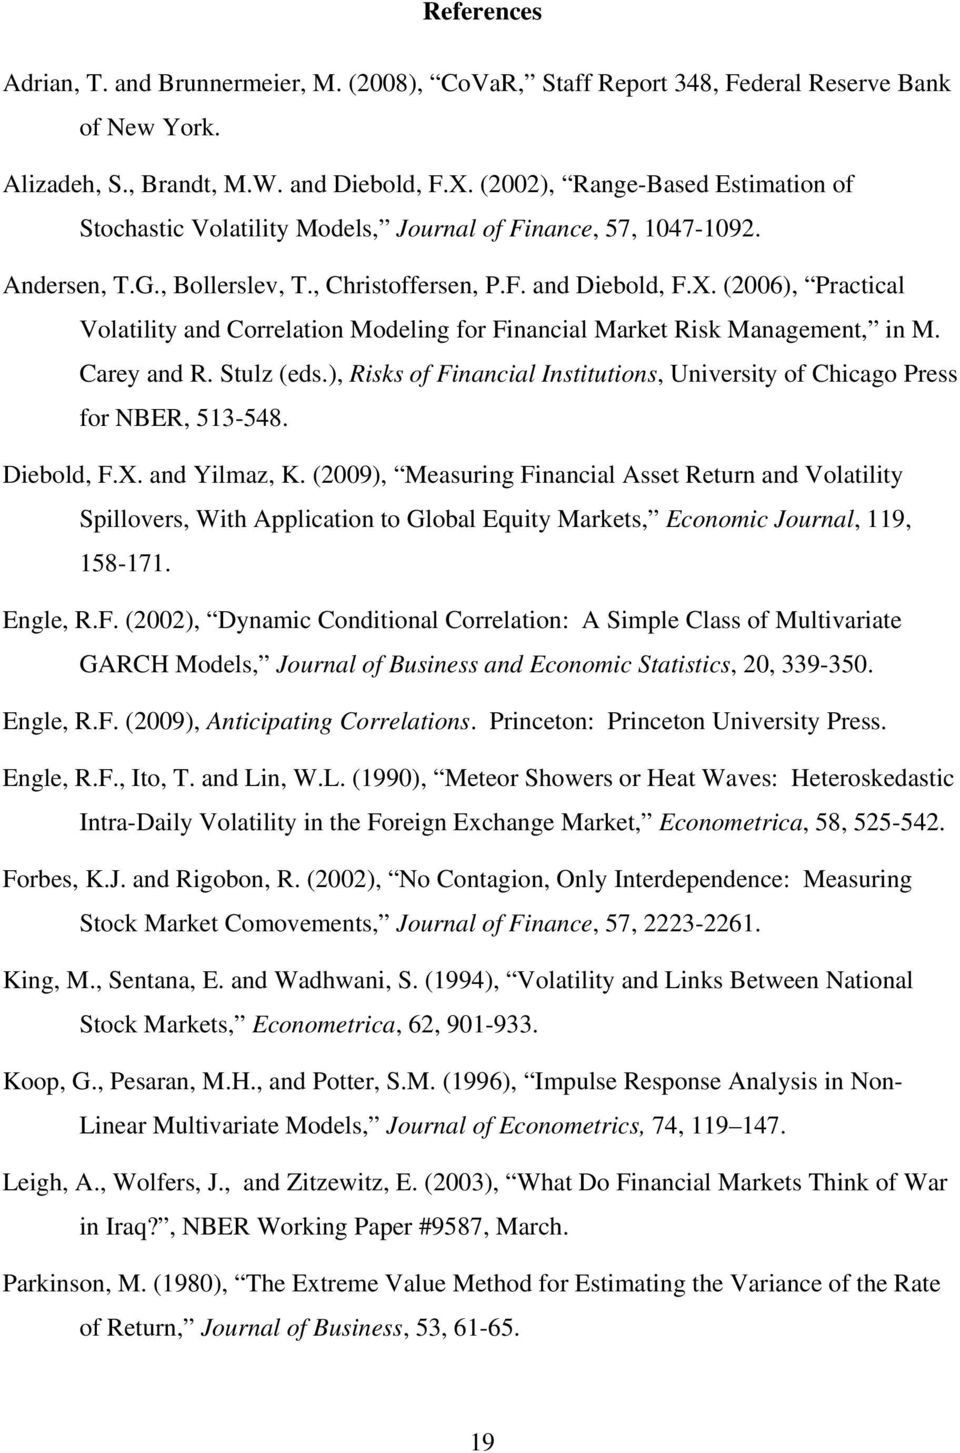 (6), Practical Volatility and Correlation Modelin for Financial Market Risk Manaement, in M. Carey and R. Stulz (eds.), Risks of Financial Institutions, University of Chicao Press for NBER, 53-548.